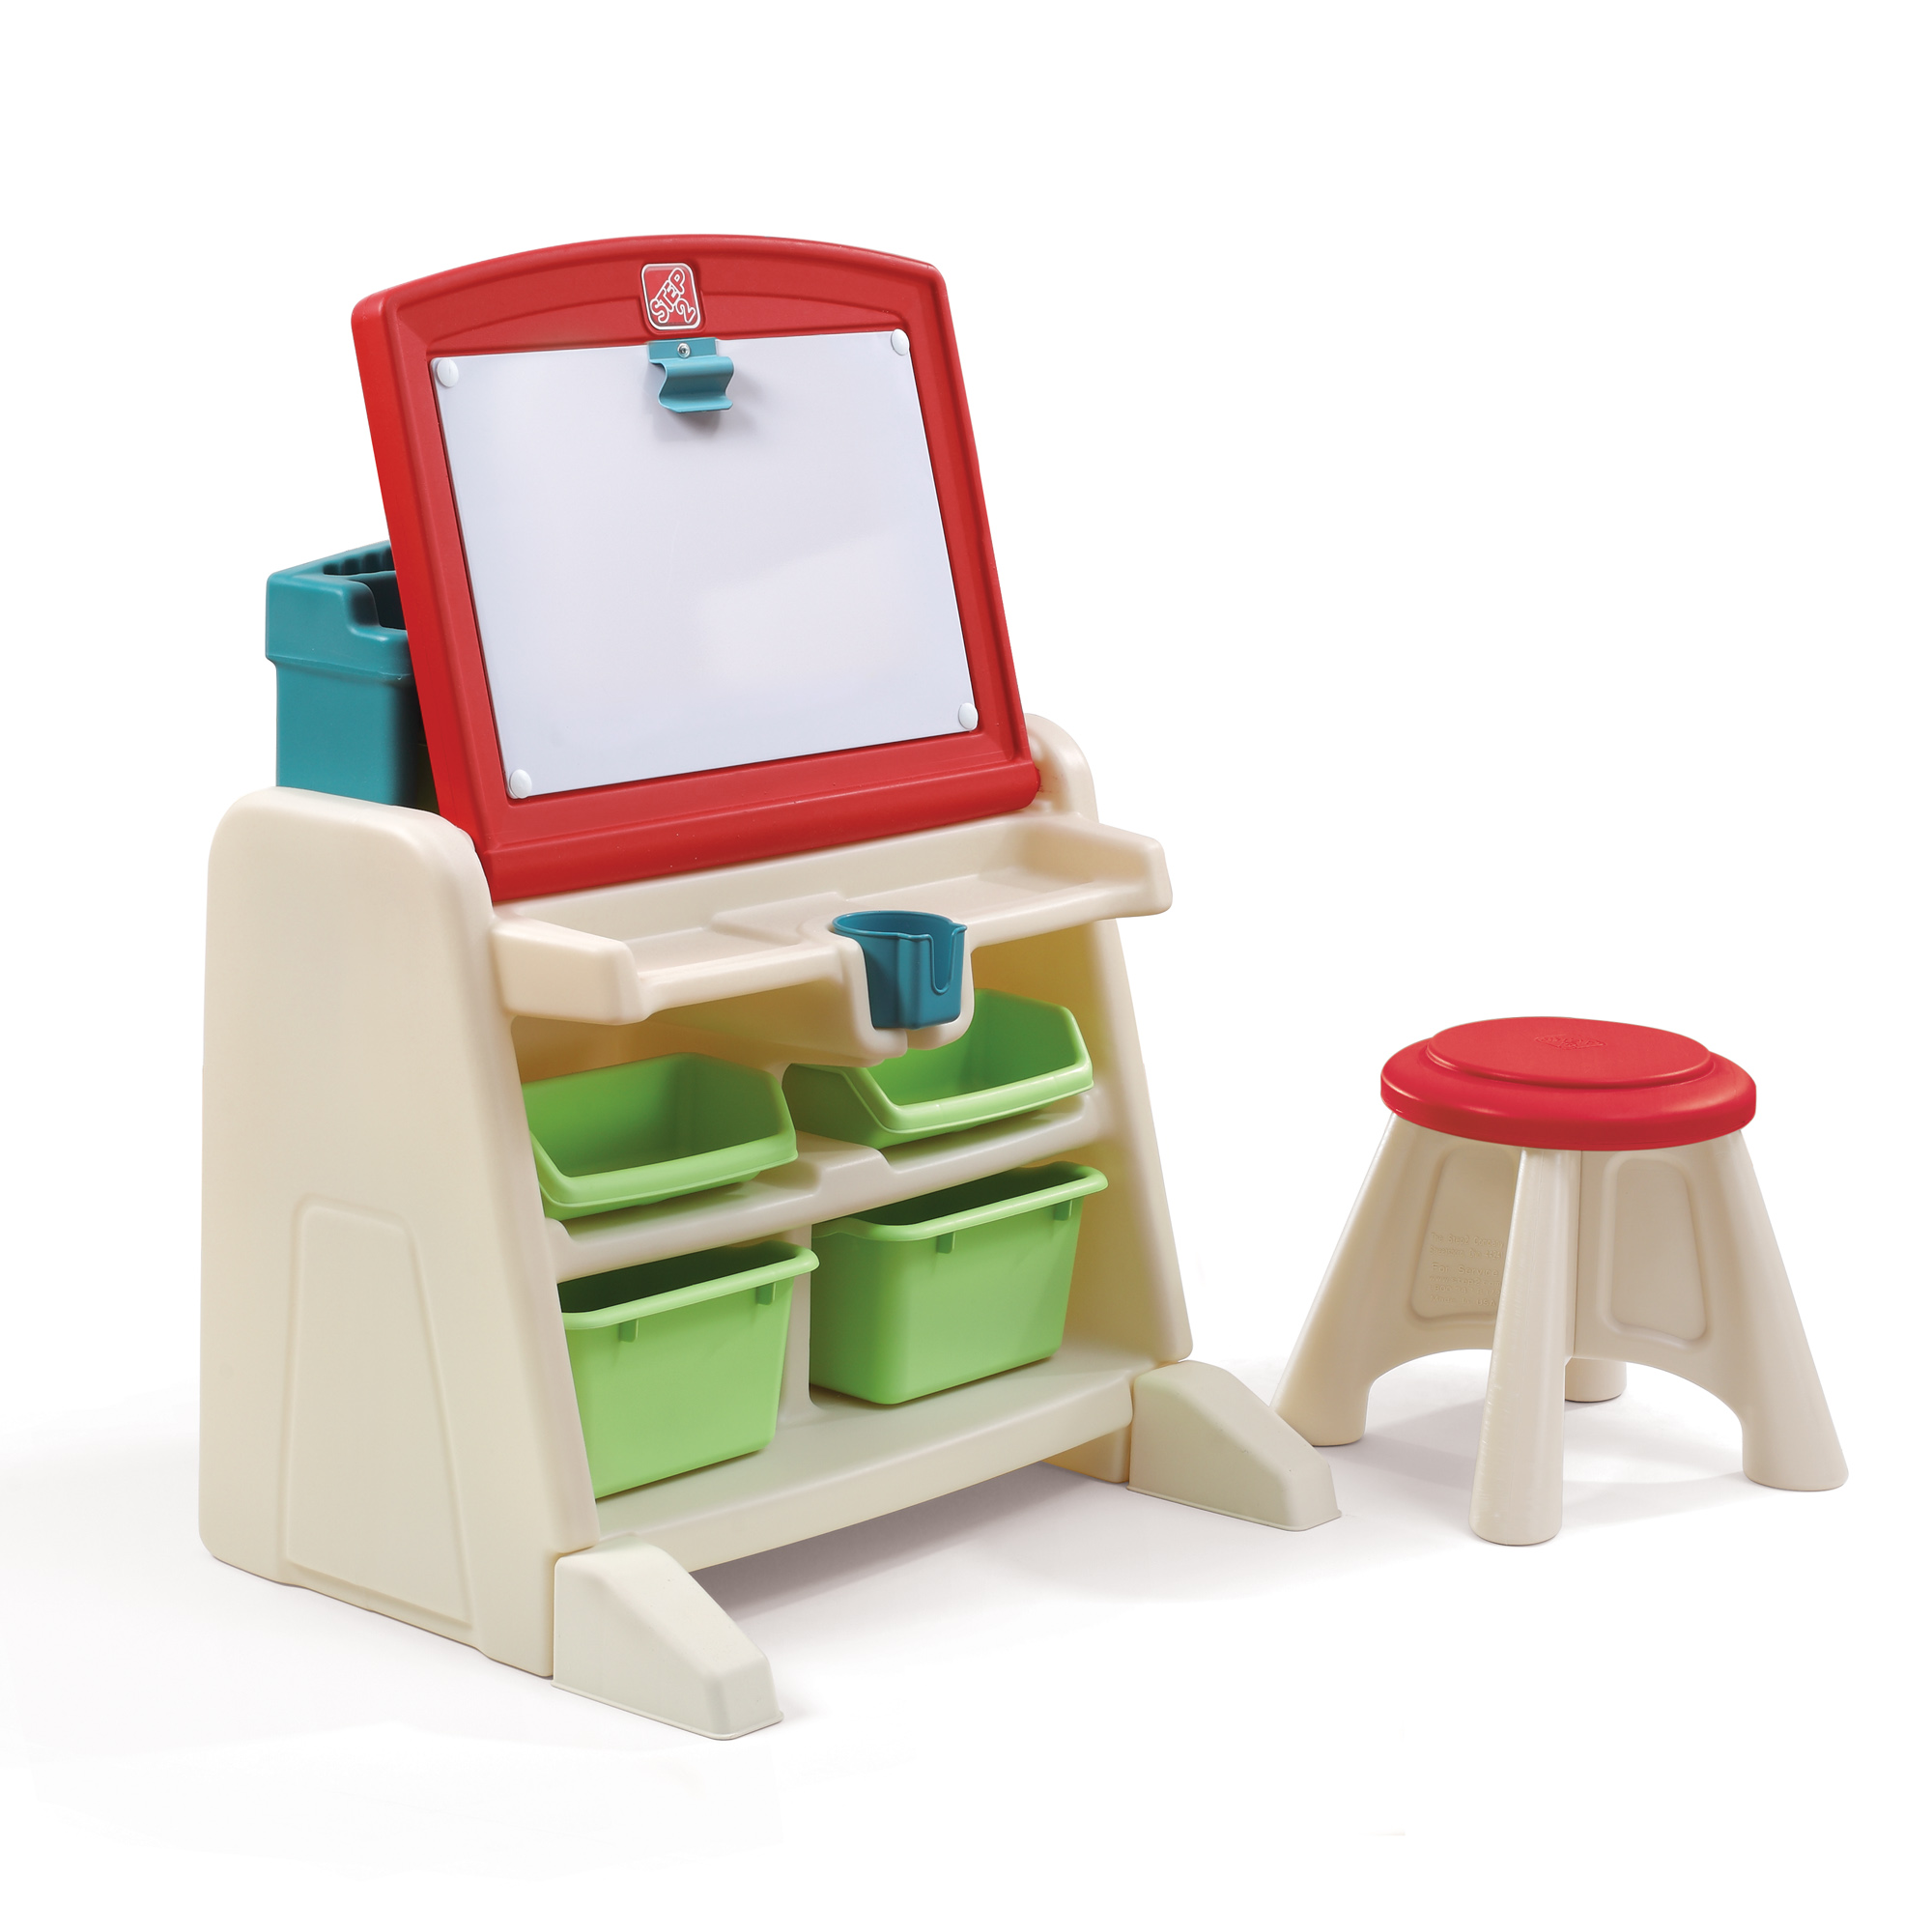 Plastic art desk for kids